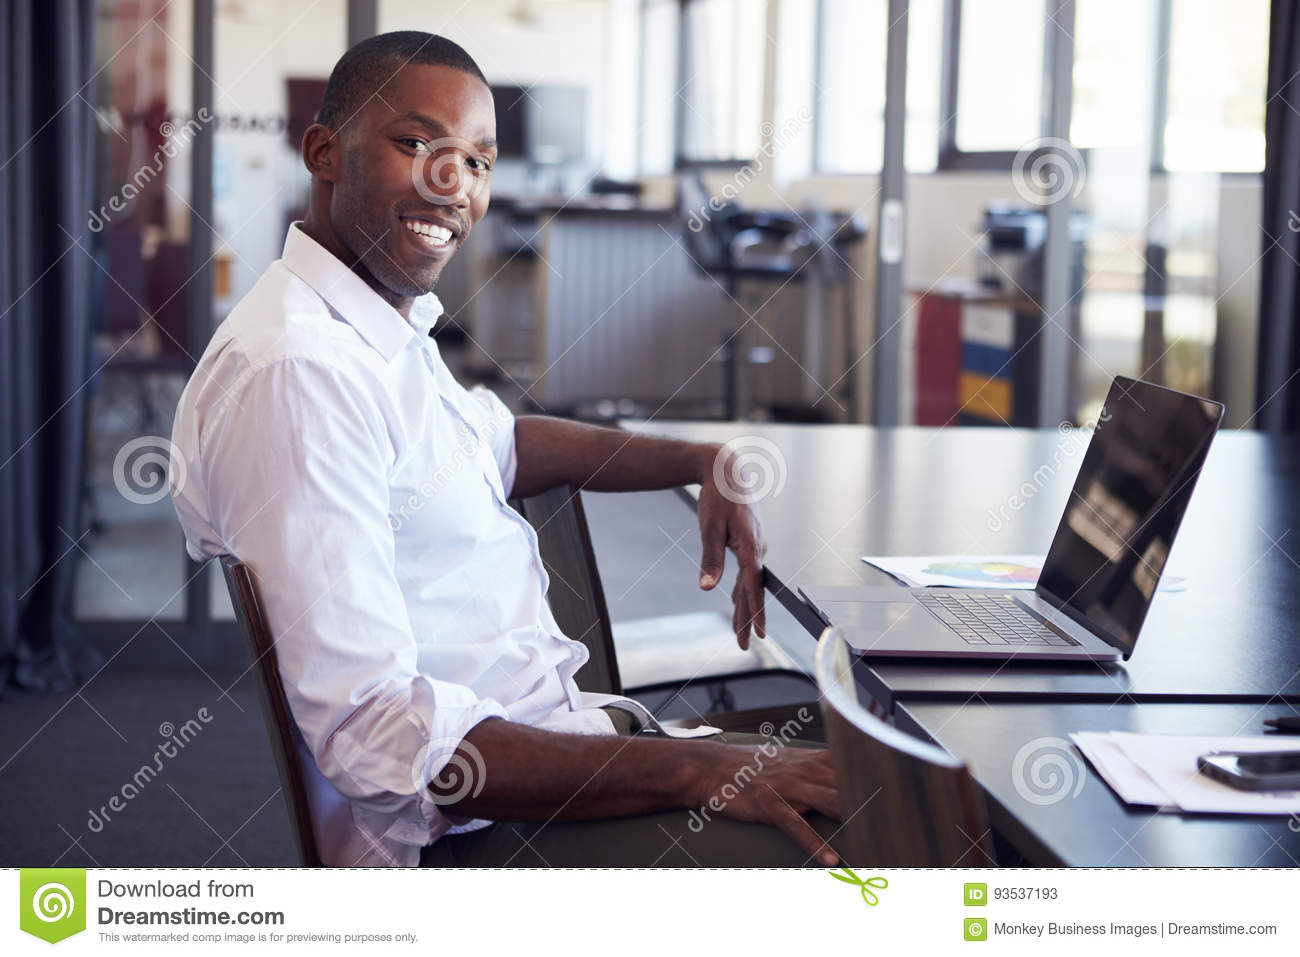 Young black man sitting at desk in office smiling to camera